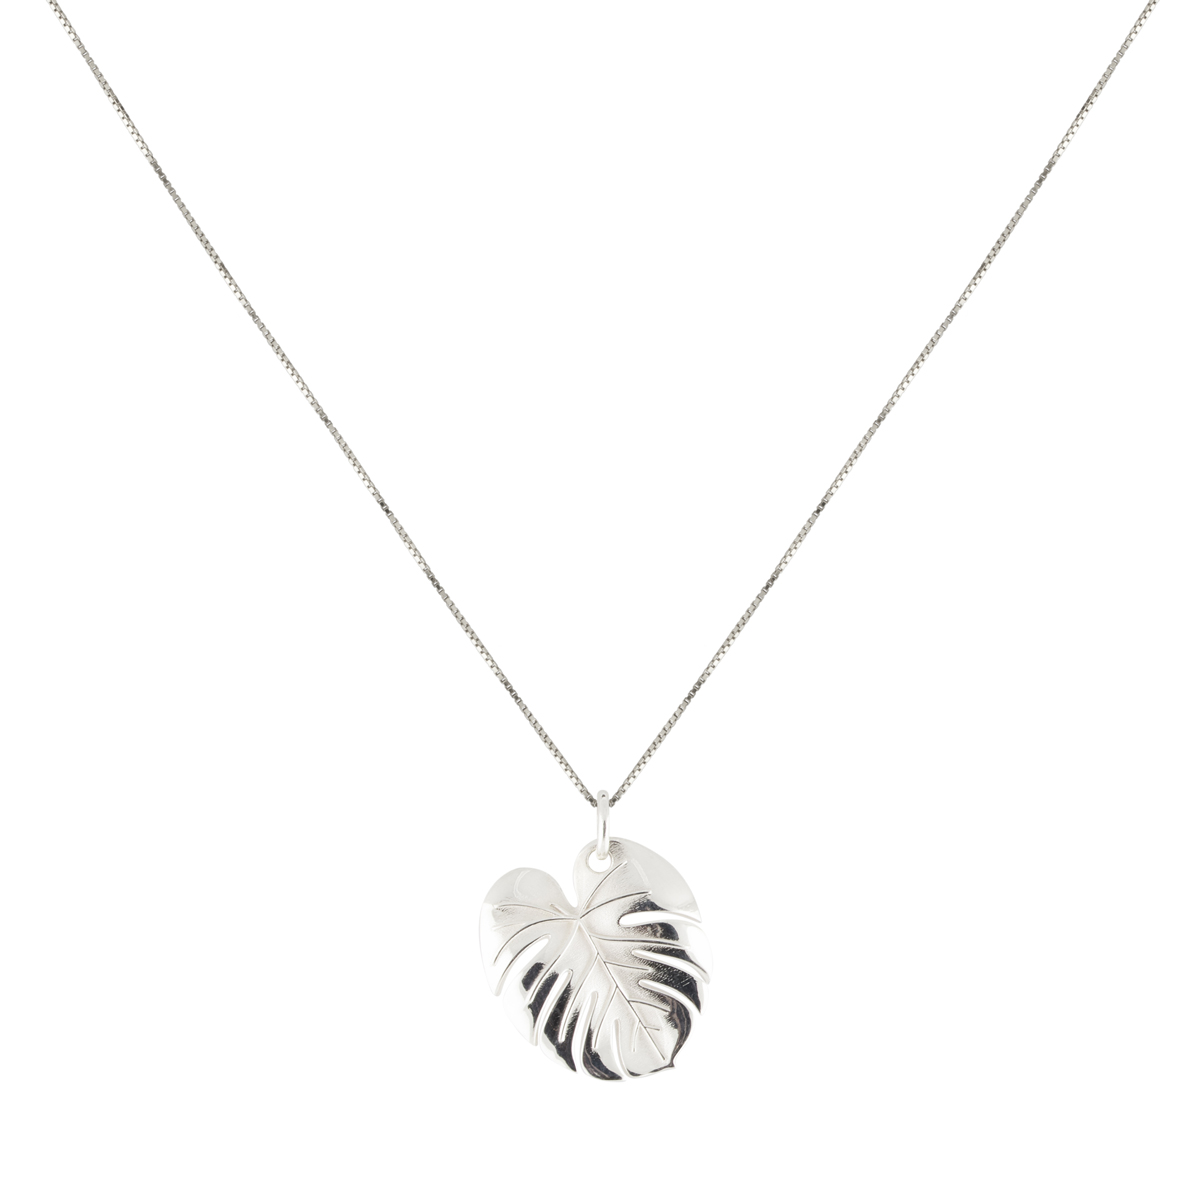 Palm Leaf Necklace Silver in the group NECKLACES at EMMA ISRAELSSON (neck101)